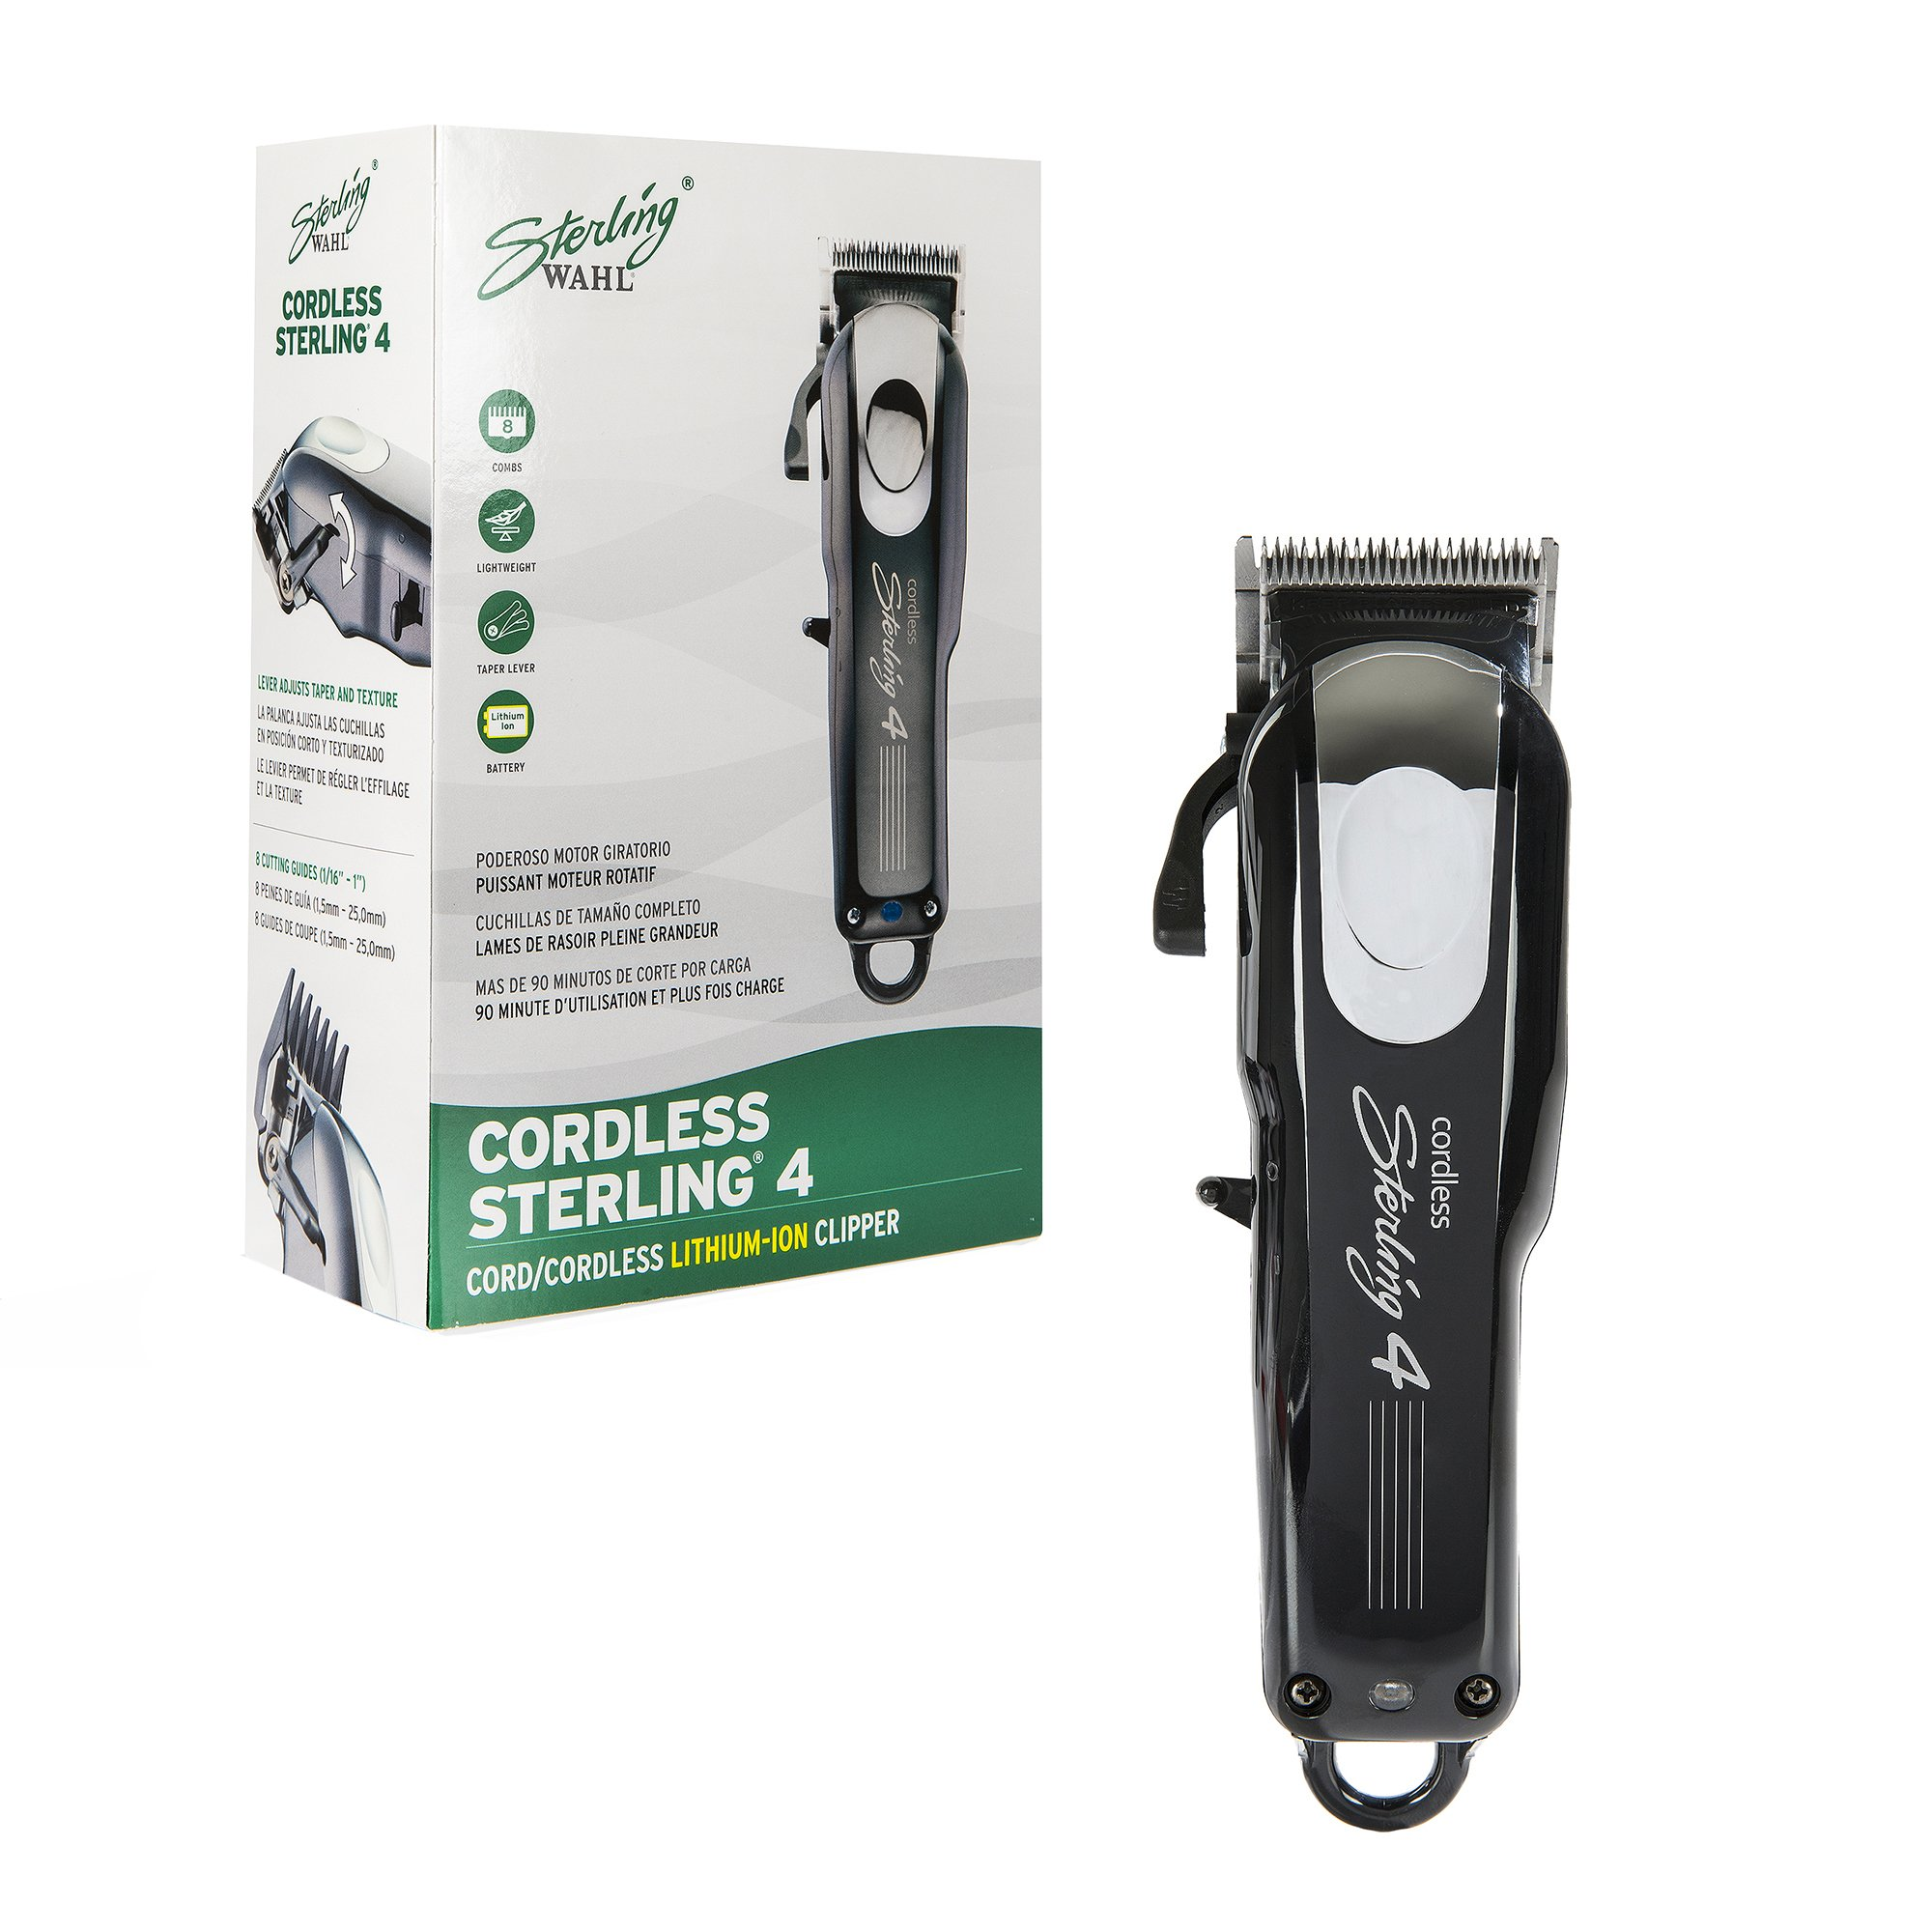 Wahl Professional Cord/Cordless Sterling 4 Clipper 8481, Ideal for Professional Stylists and Barbers, Rotary Motor, Black